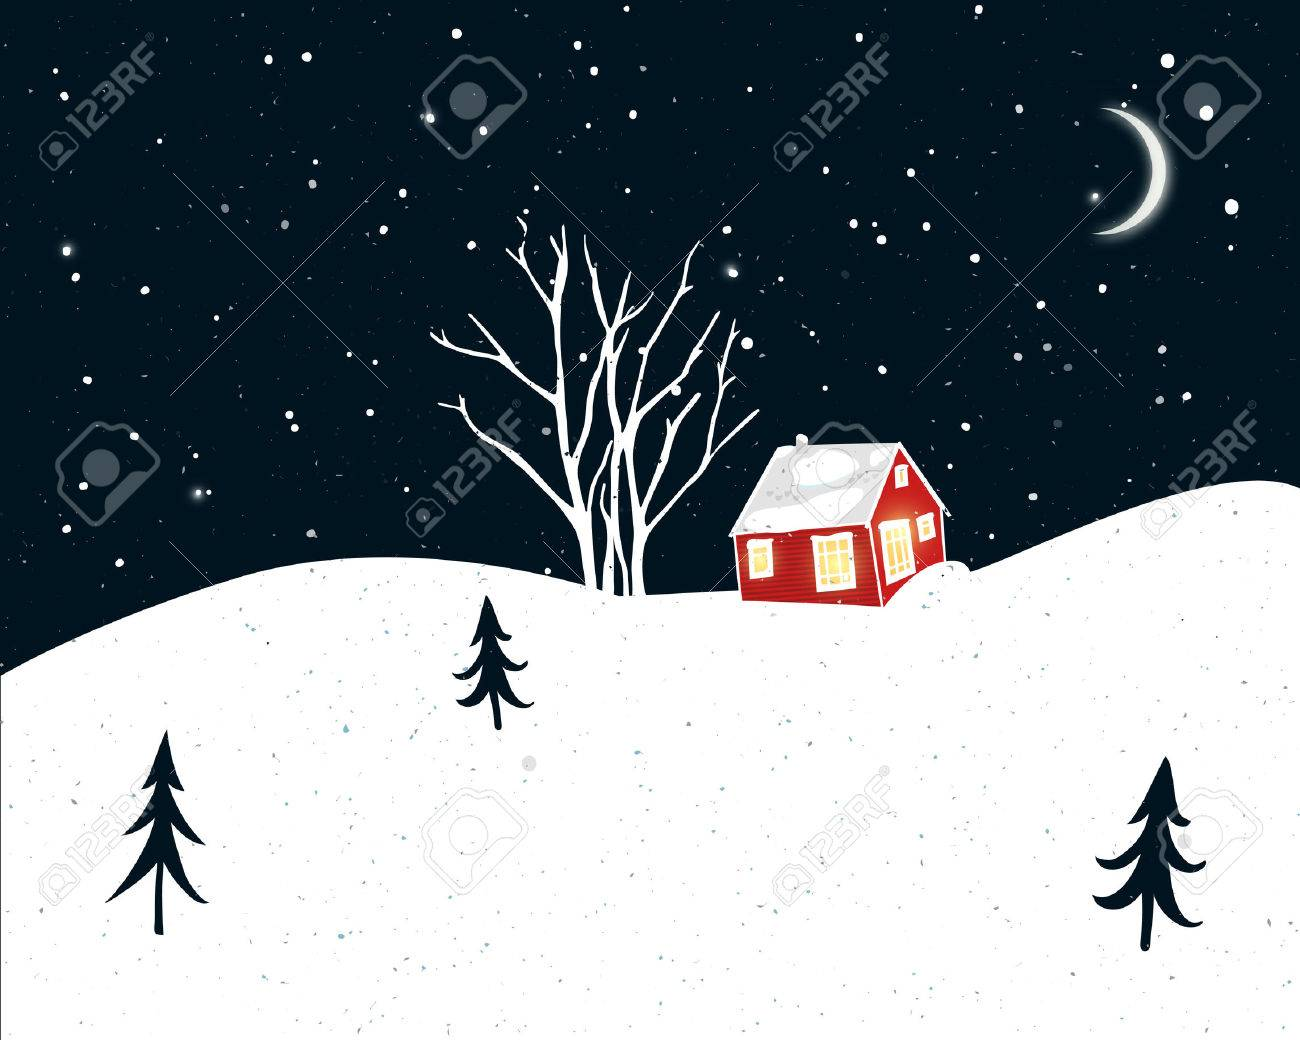 Night Winter Scene With Small Red House, Trees Silhouettes And ...